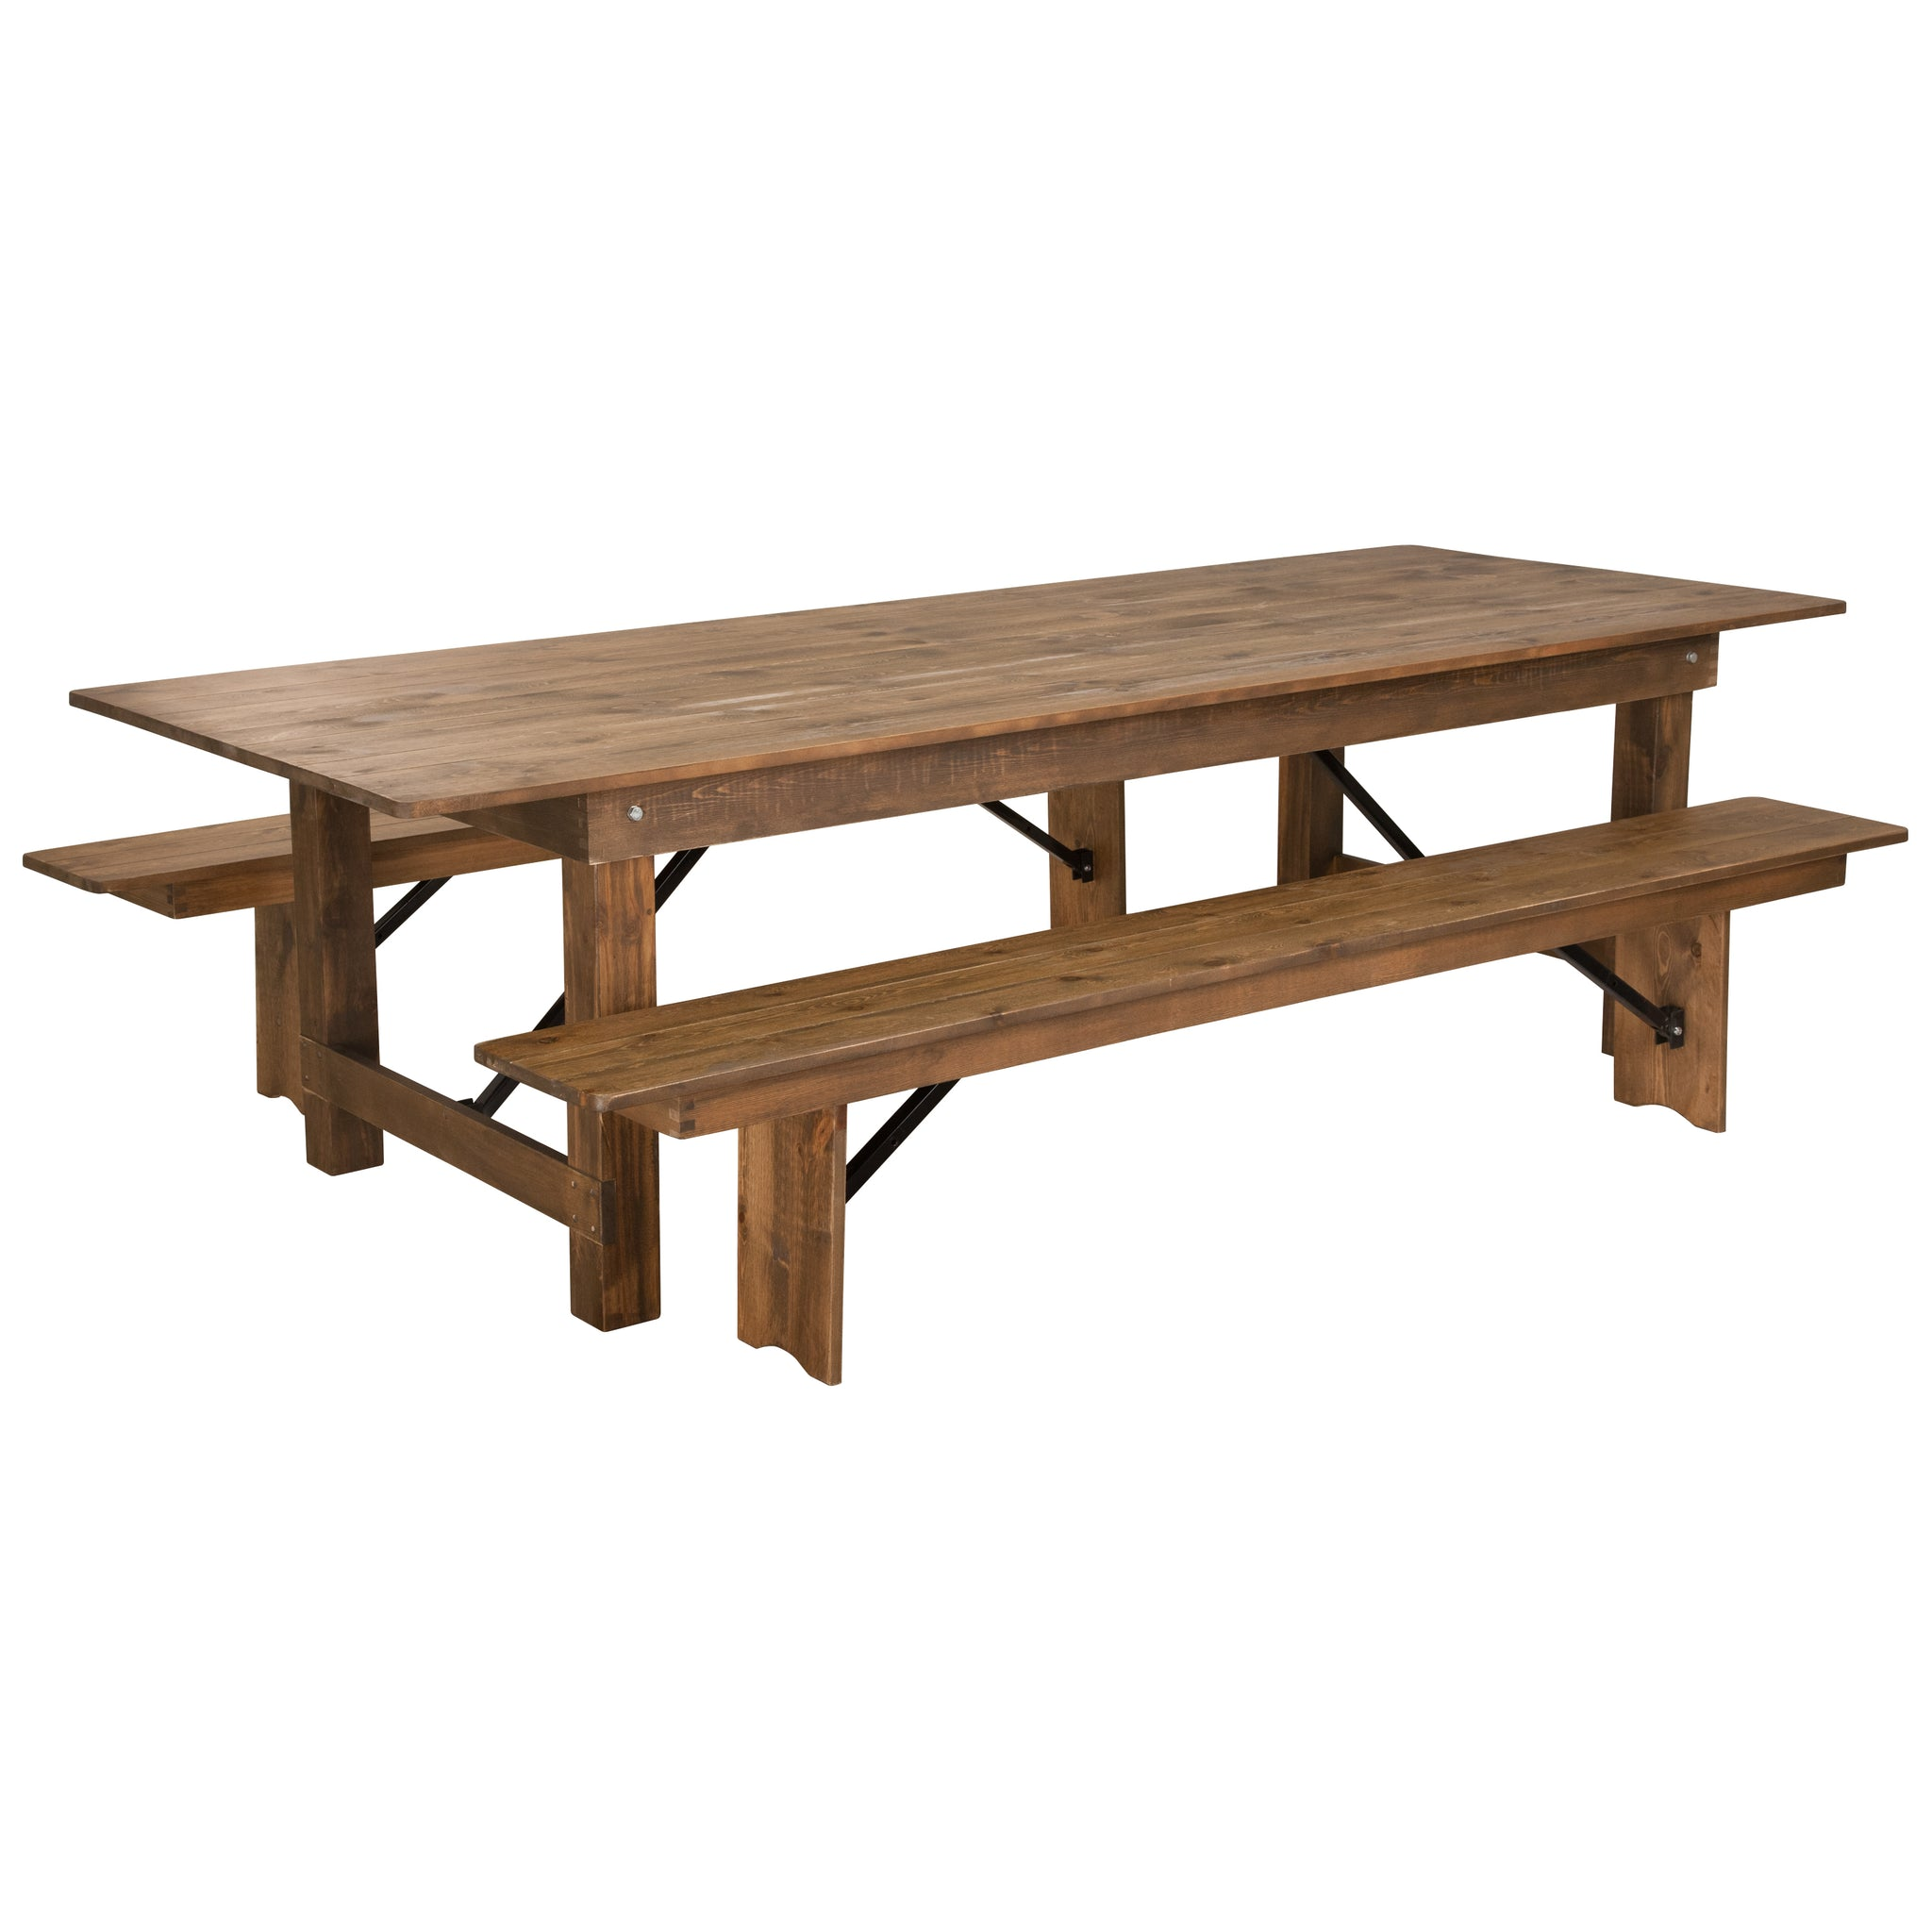 "HERCULES Series 9' x 40"""" Folding Farm Table and Two Bench Set: Antique Rustic"